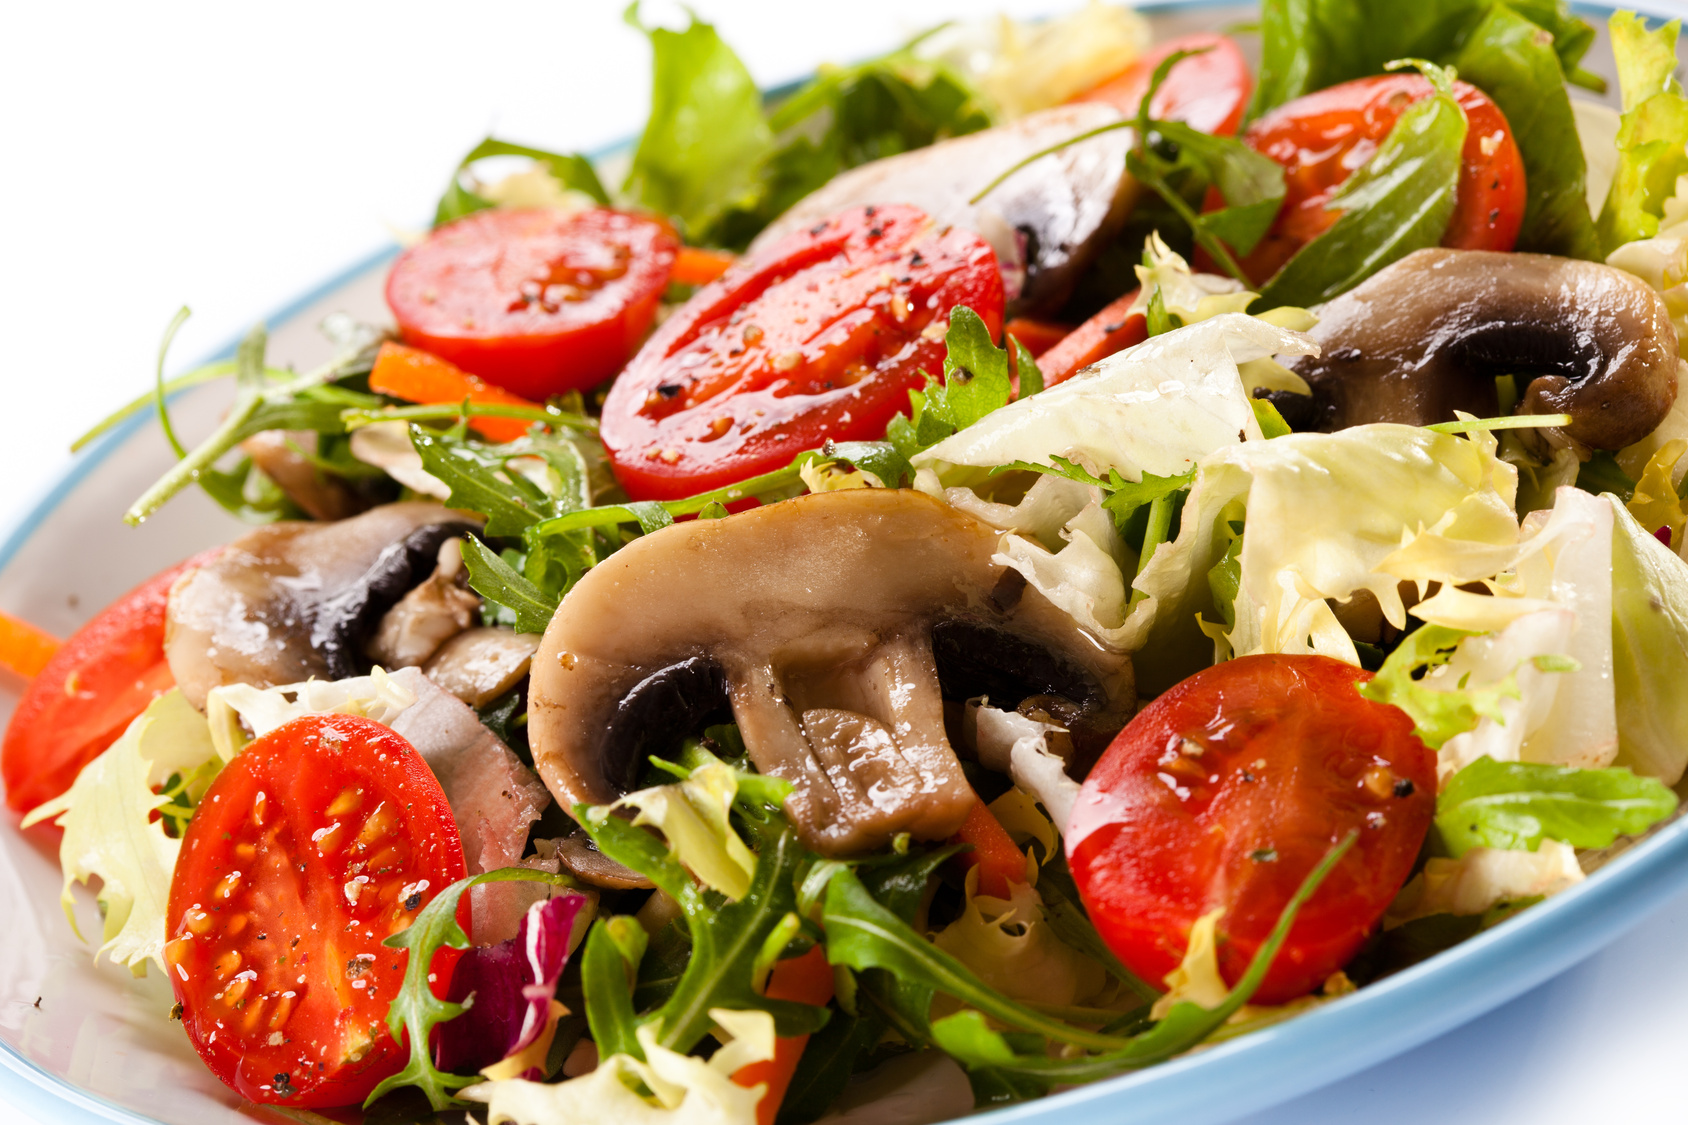 love creamy salad dressing are you trying to lose weight